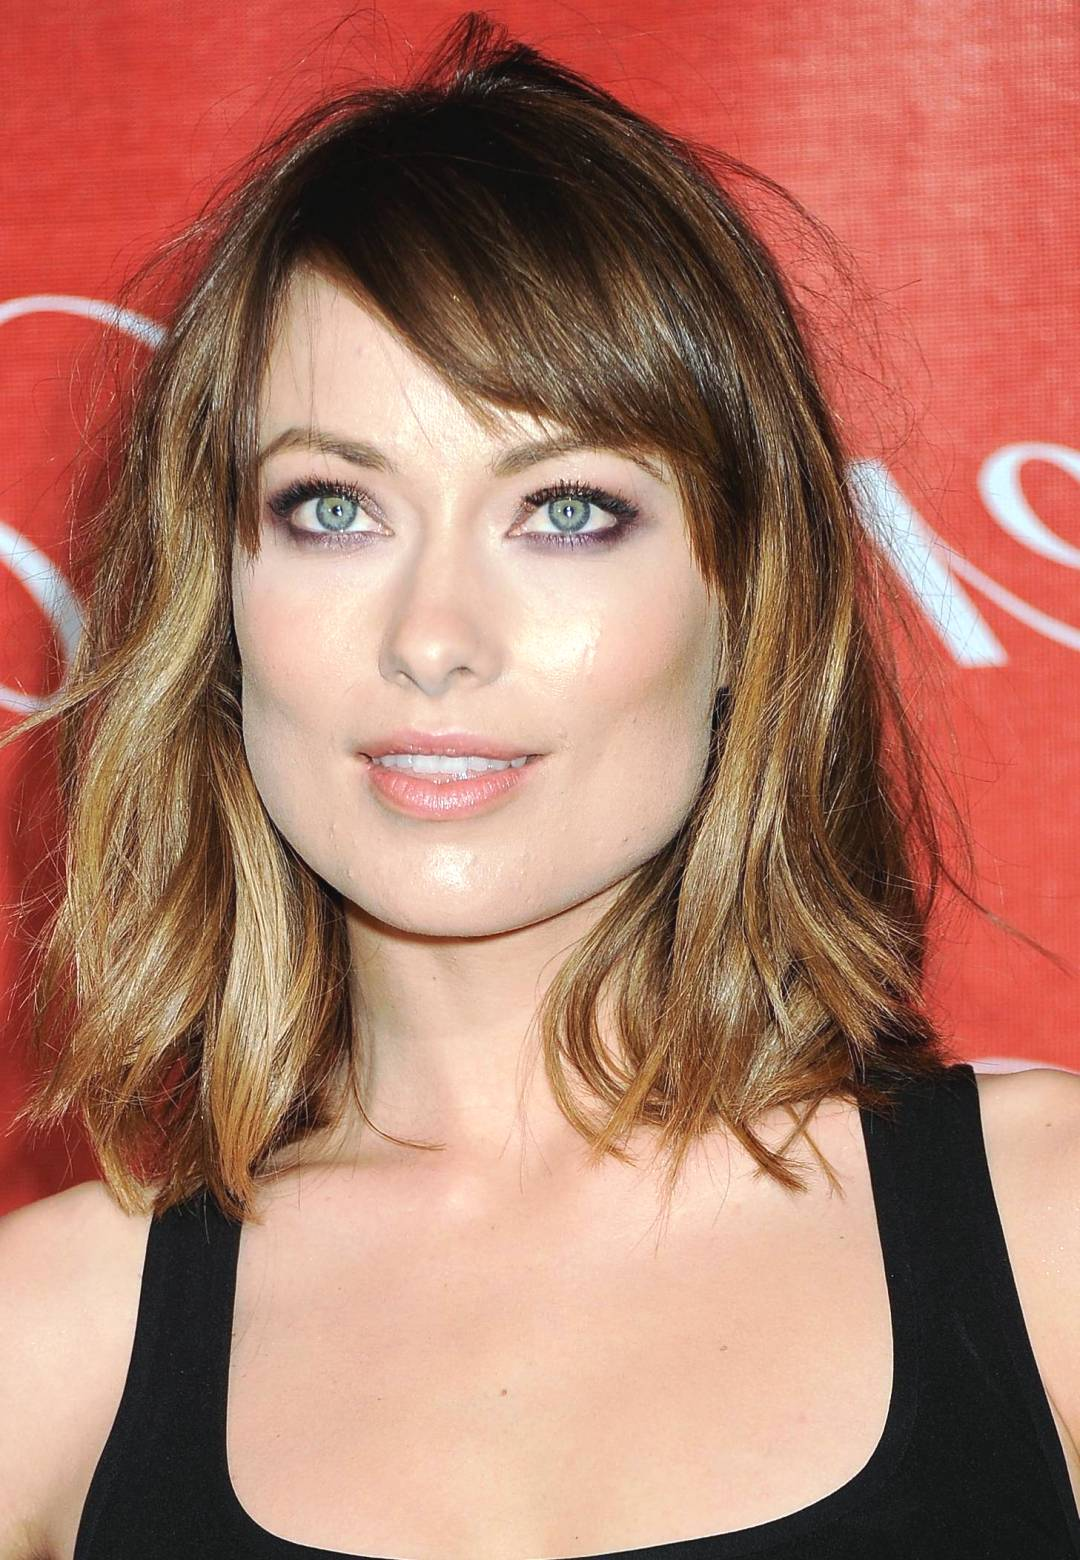 medium length hair styles Medium-length layered hair is quite versatile while the soft layers help to add or reduce volume from the mane, the length is just right to try out a variety of hairstyles.